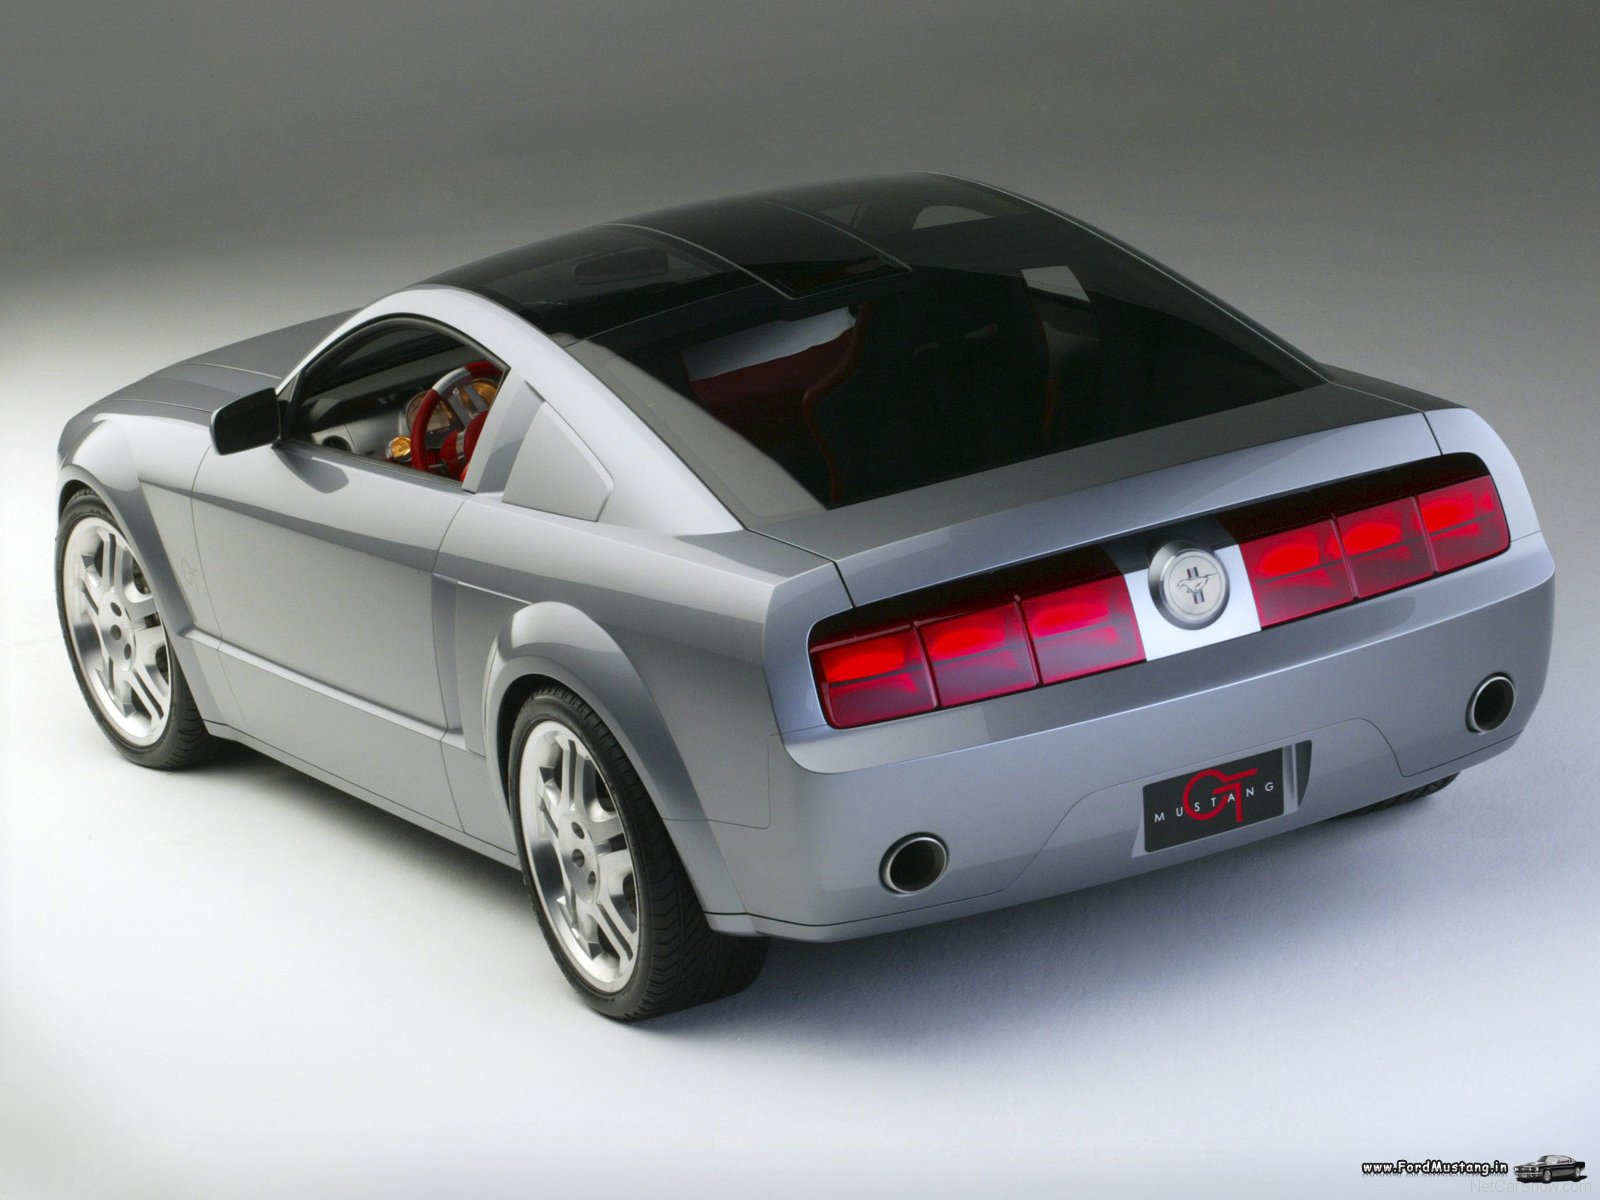 Ford Mustang Gt Coupe Concept 2003 1600 215 1200 Wallpapers Hd